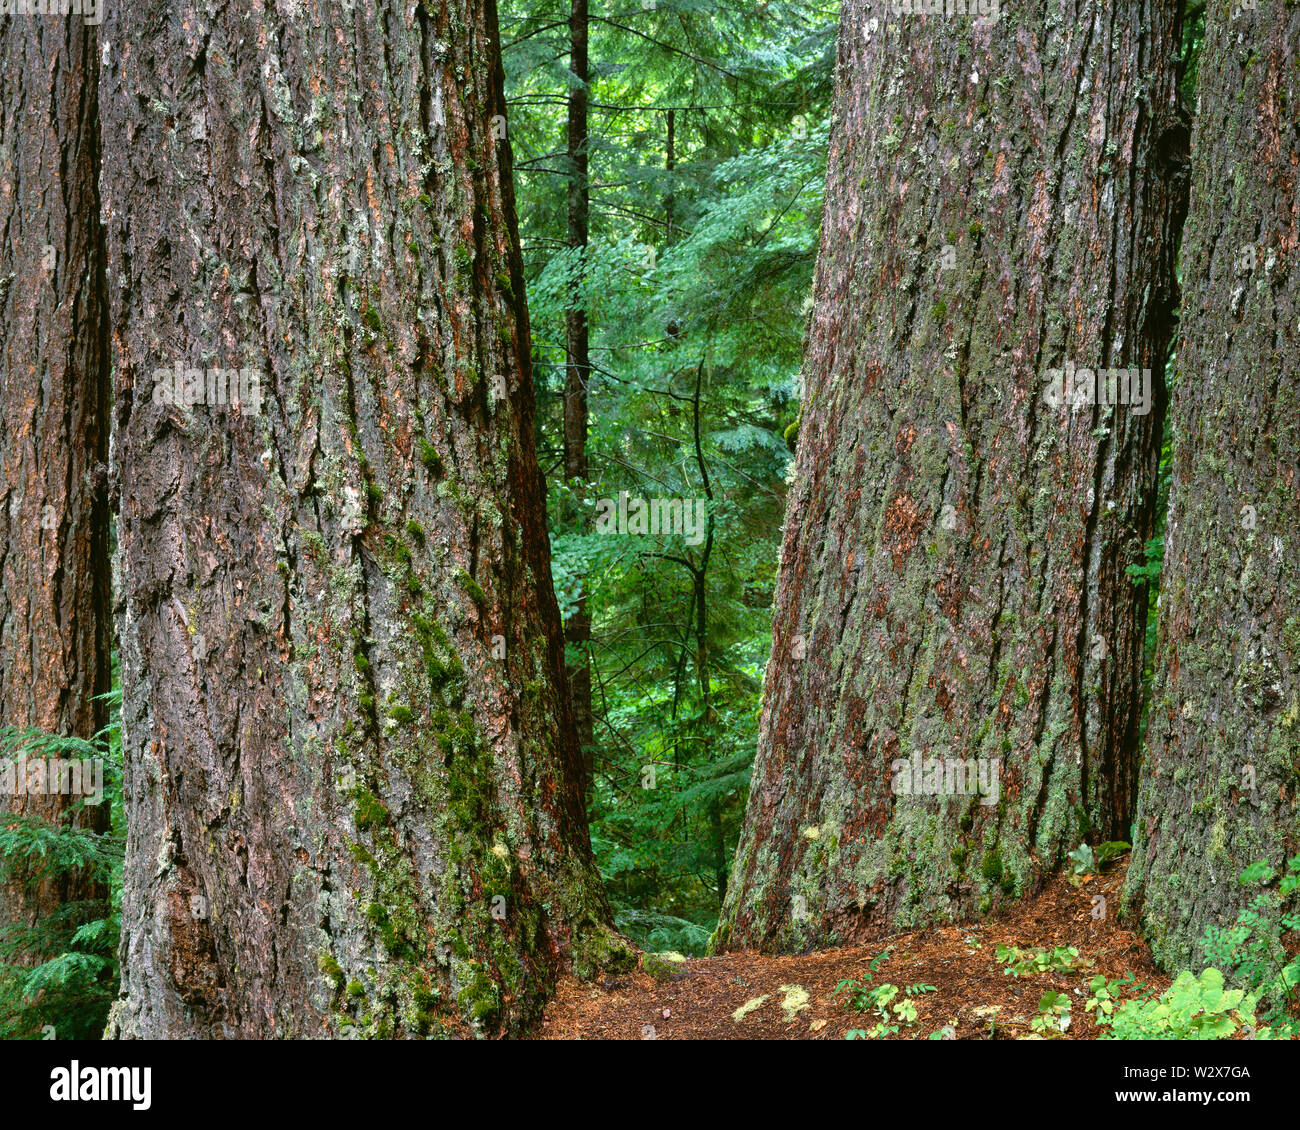 USA, Washington, Mt. Rainier National Park, Very large trunks of Douglas fir and spring flora in the Ohanepecosh Valley. - Stock Image